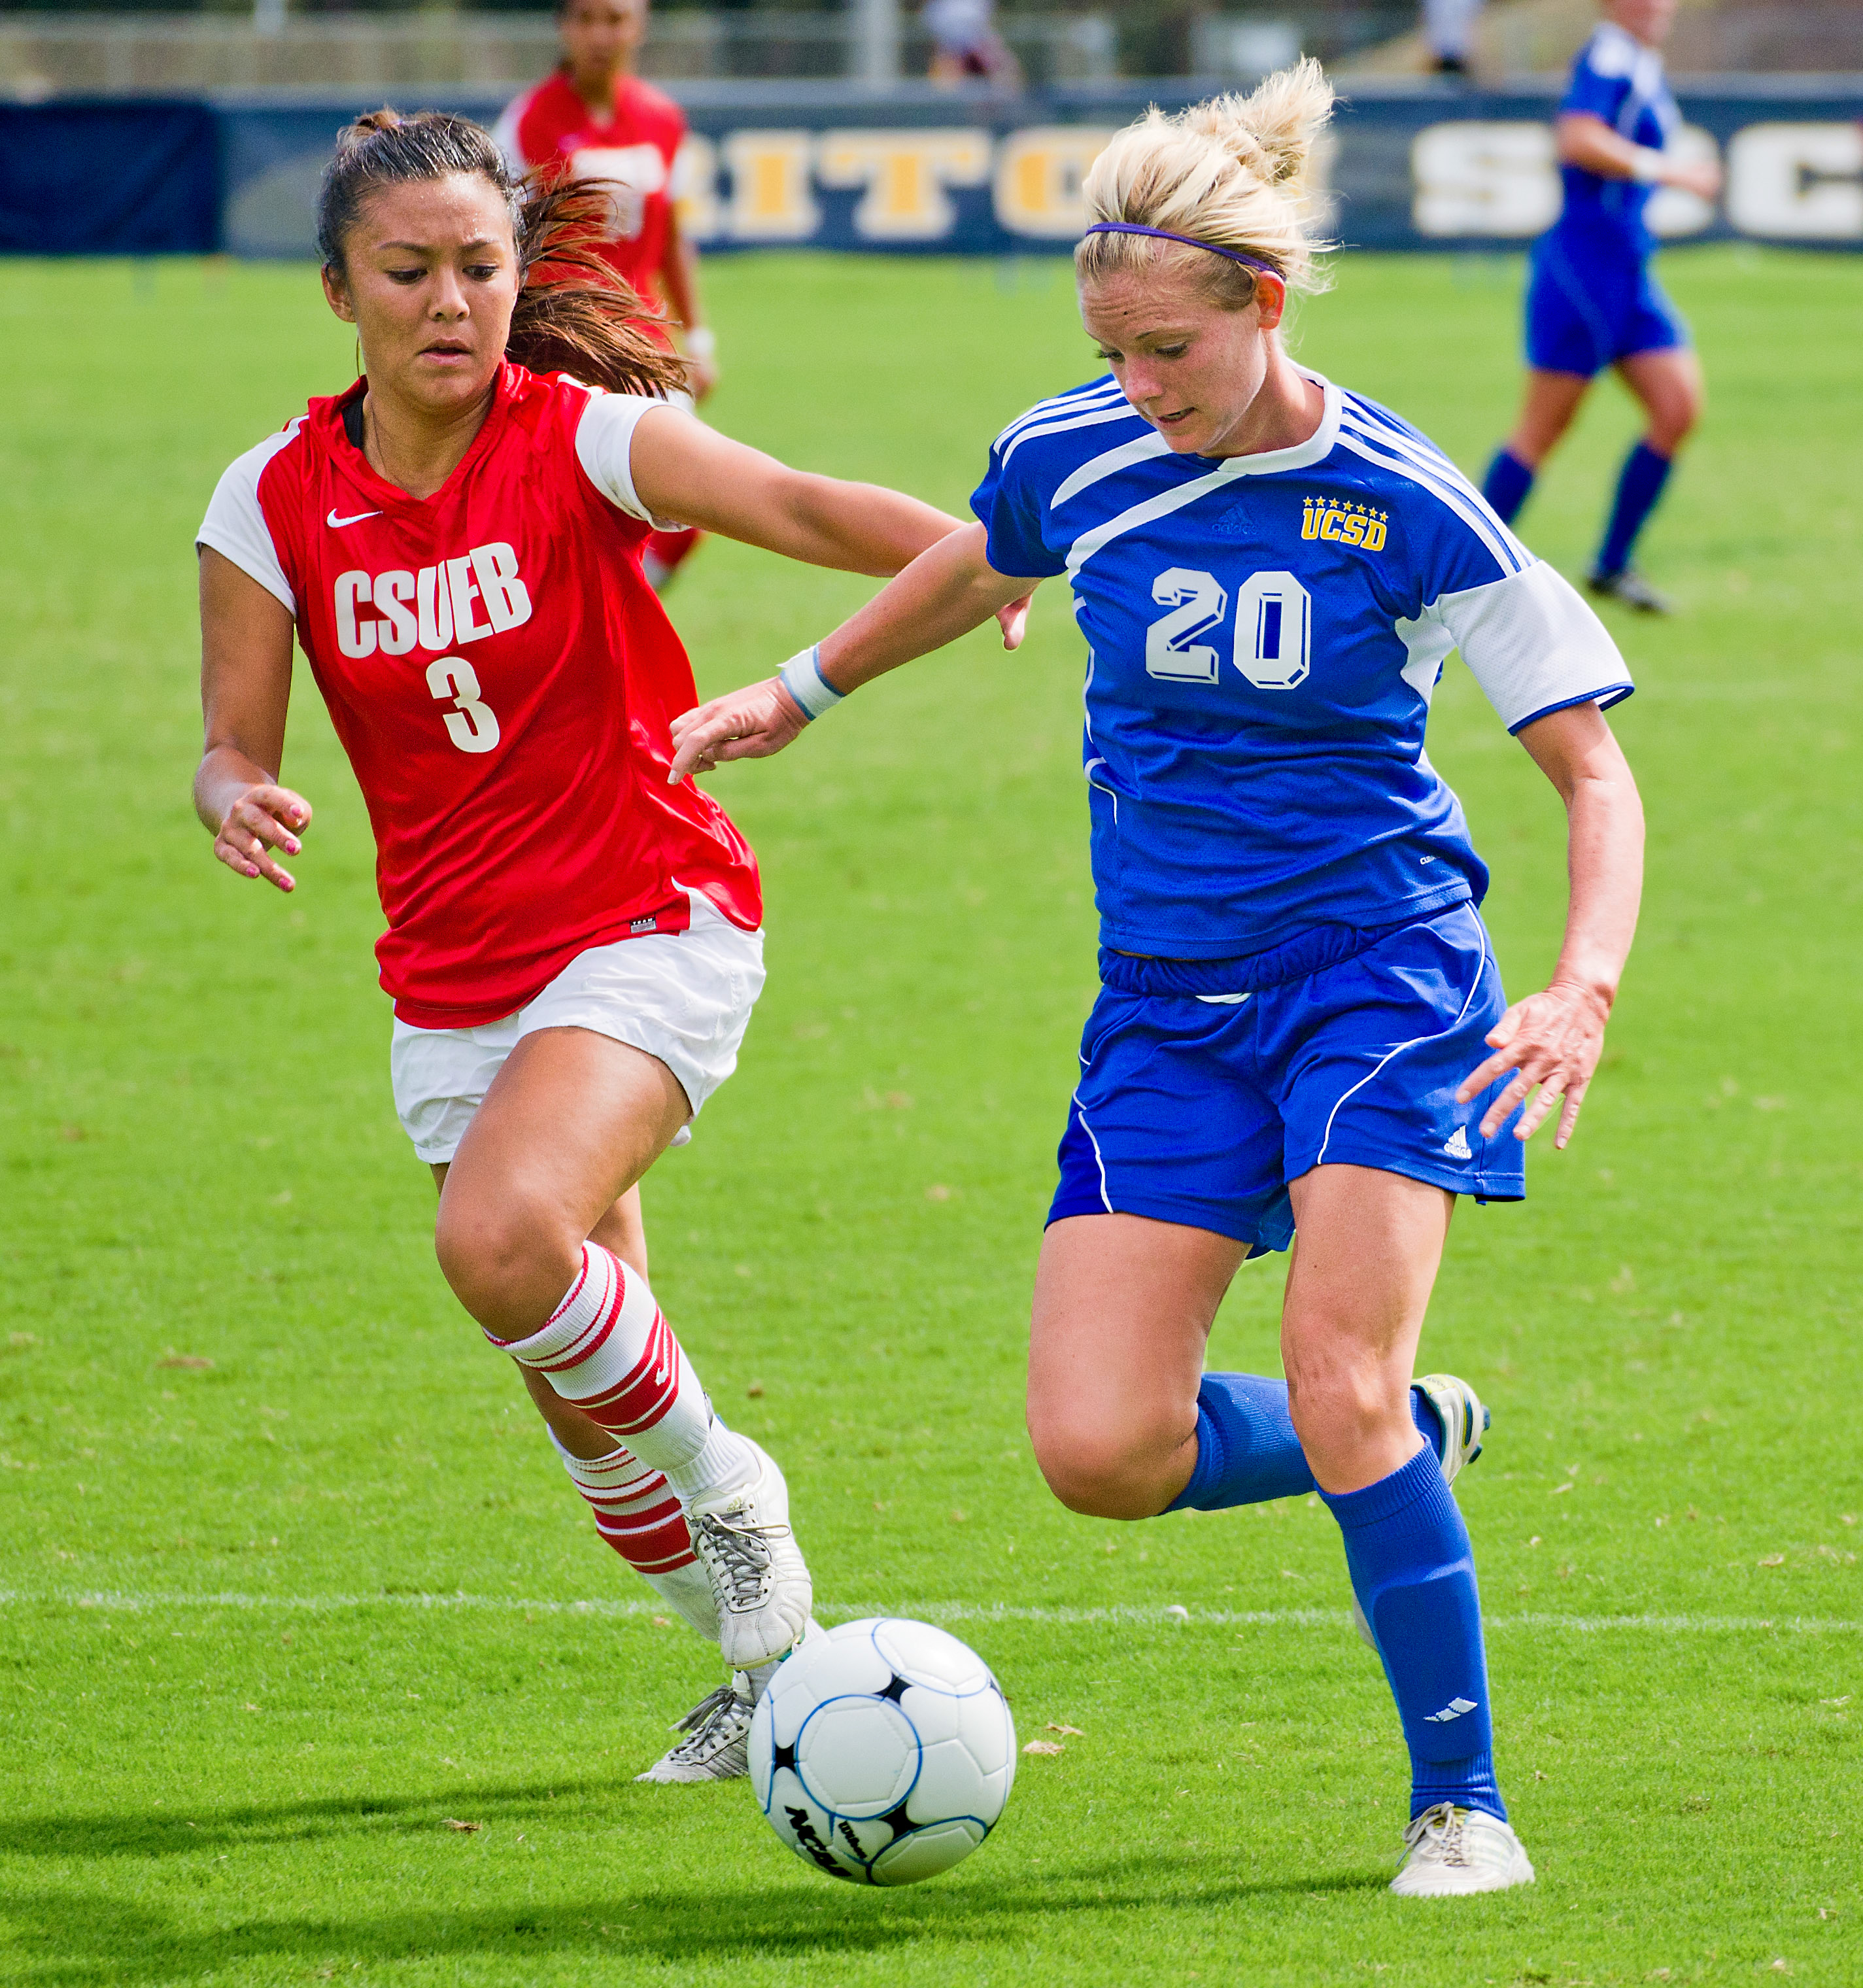 File:Sara Yamasaki, Alexa Enlow fighting over ball.jpg ...